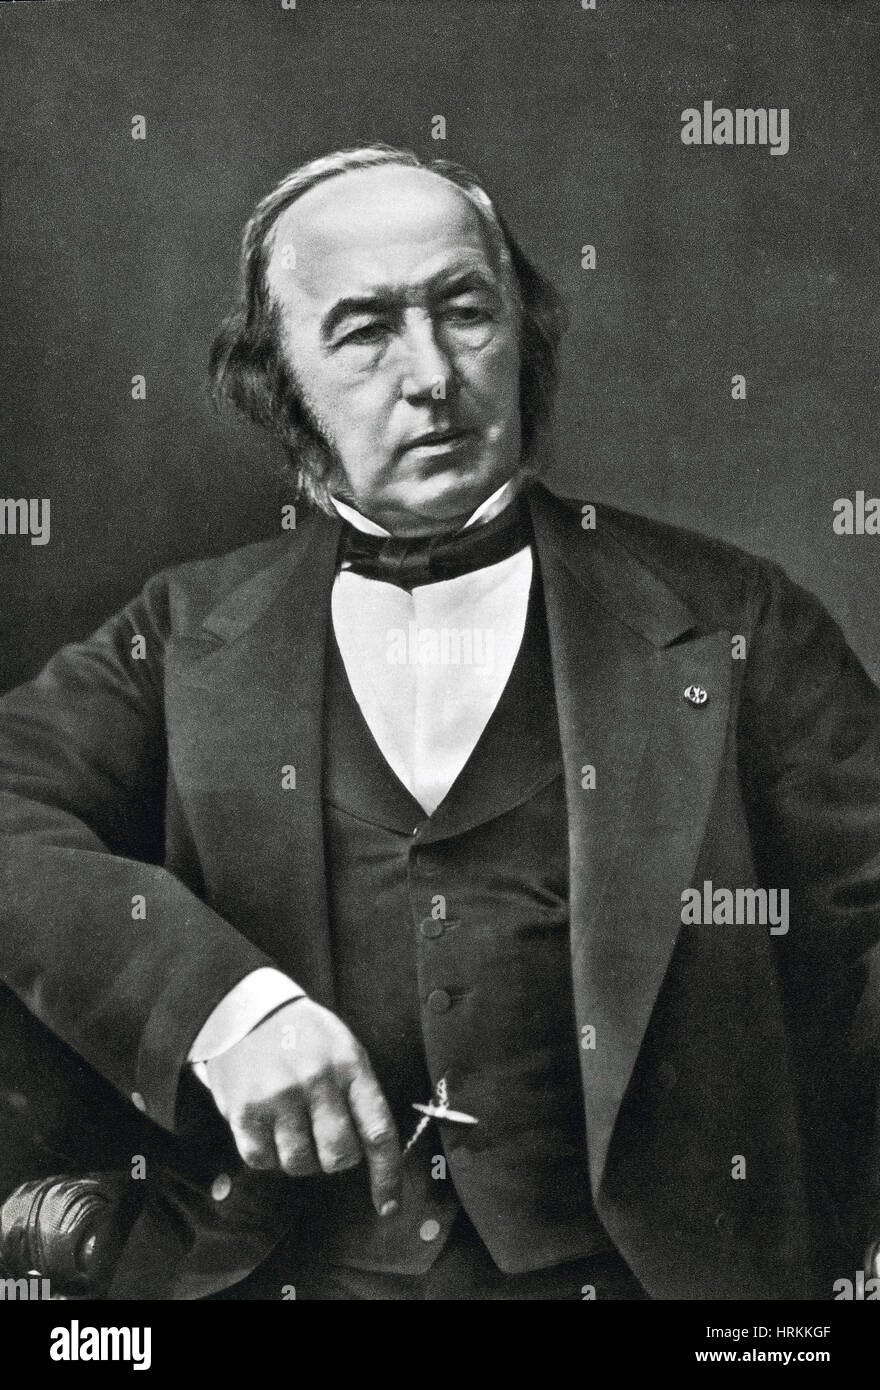 Claude Bernard, French Physiologist - Stock Image